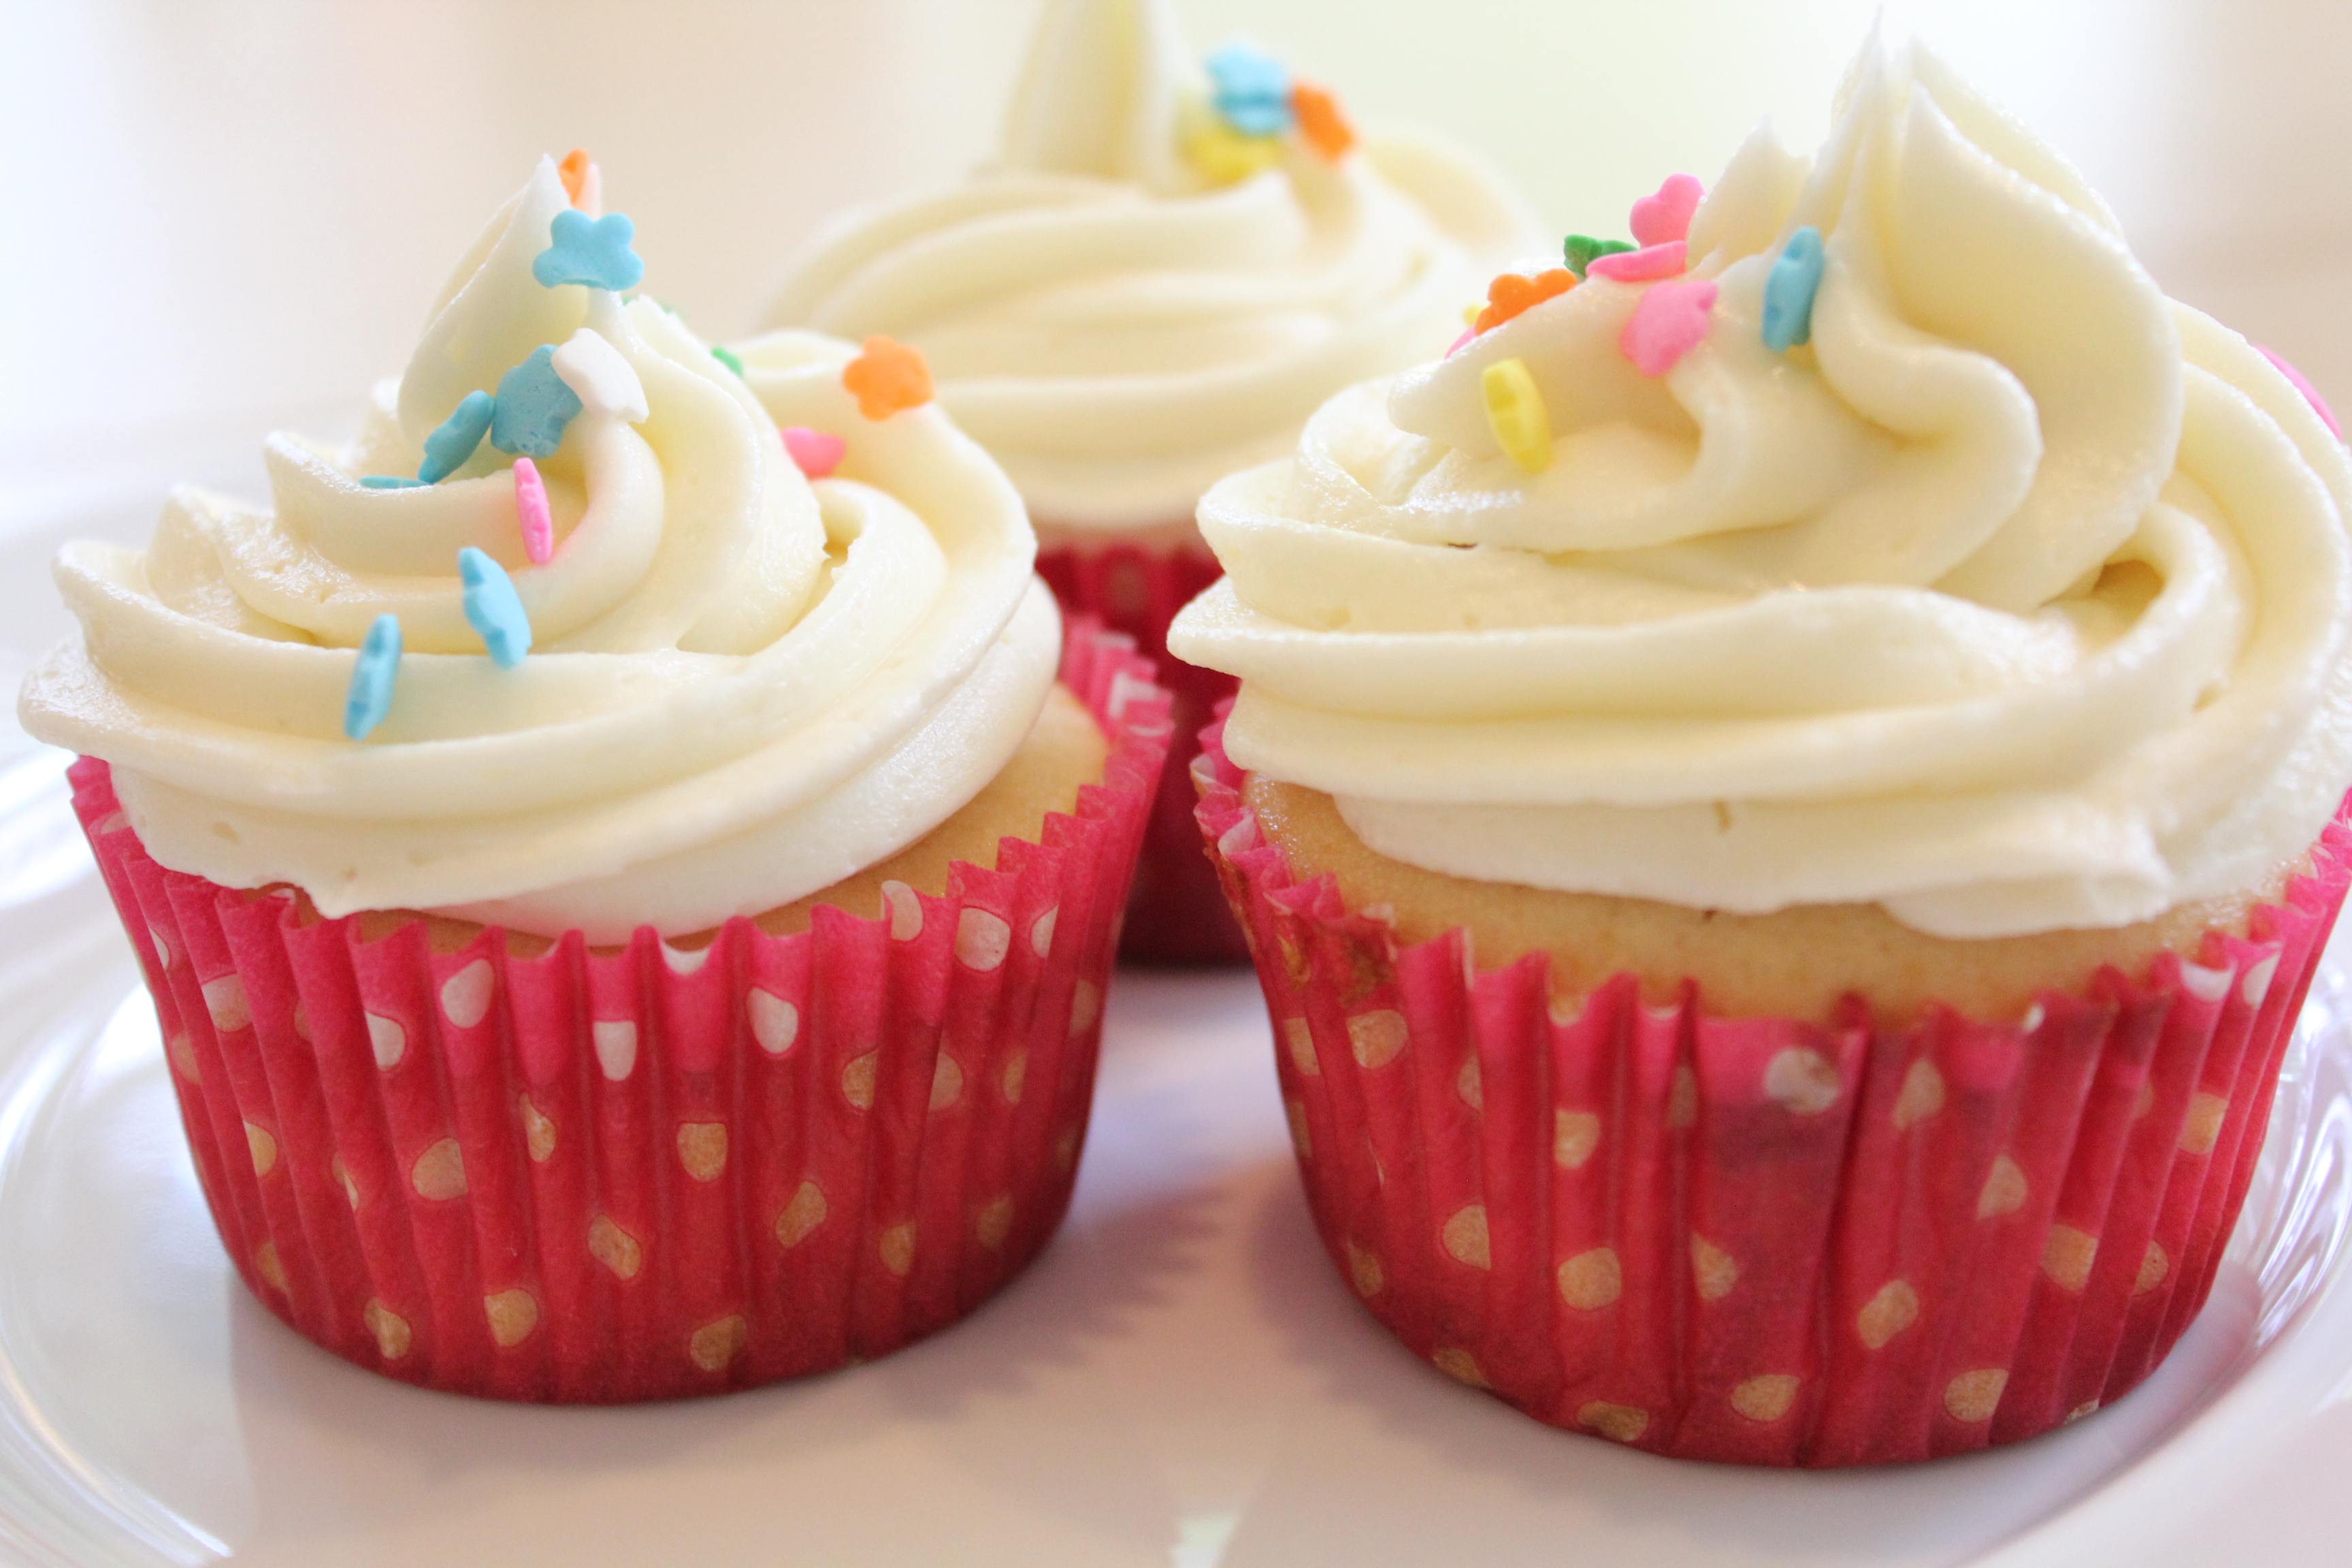 Simple Vanilla Frosting for Cupcakes - Hip Foodie Mom